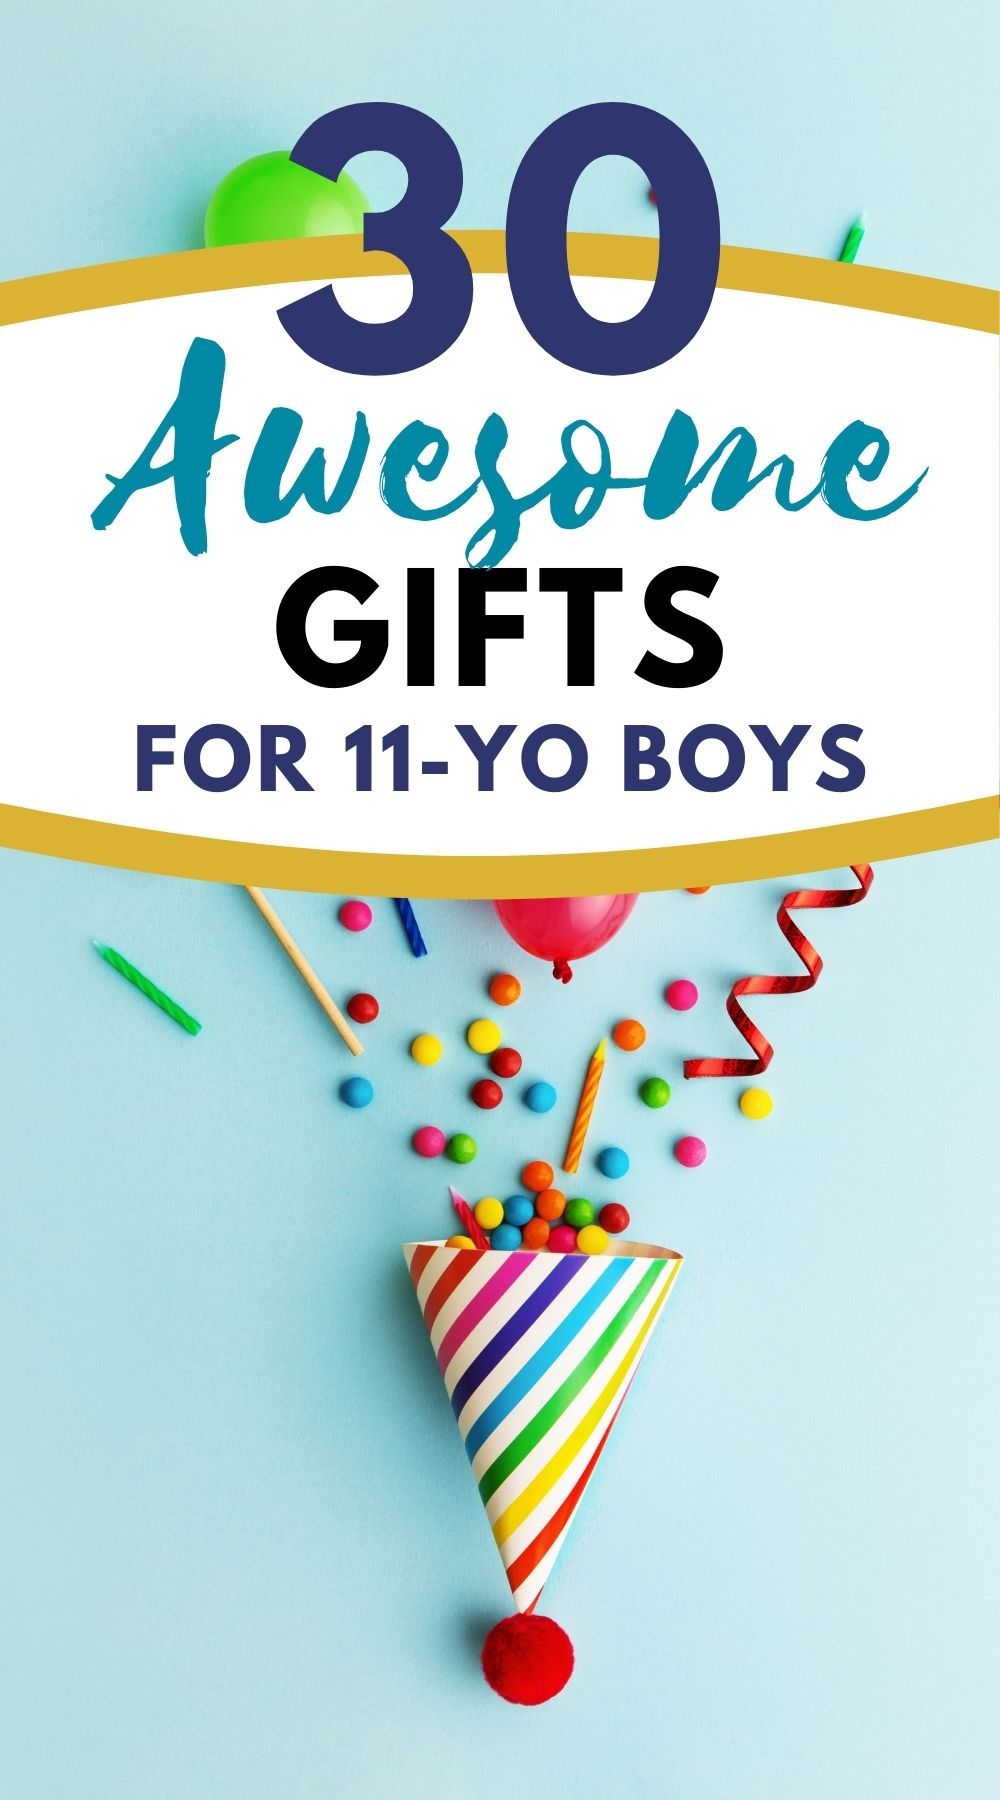 Gift ideas for 11-year-old boys